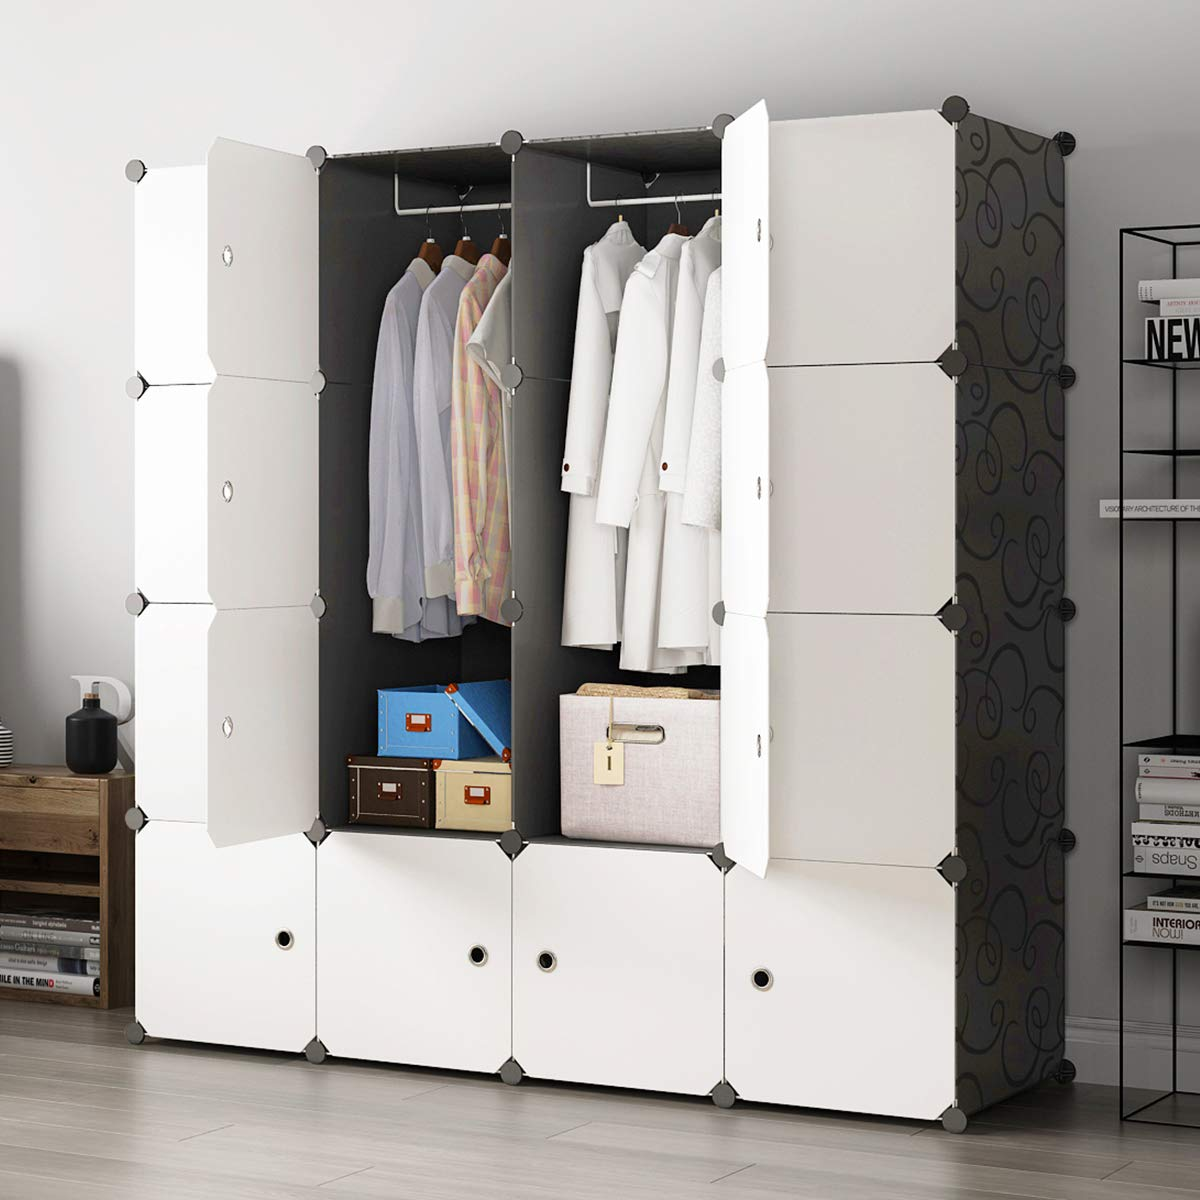 KOUSI Portable Closet Clothes Wardrobe Bedroom Armoire Storage Organizer with Doors, Capacious & Sturdy, Black, 10 Cubes+2 Hanging Sections